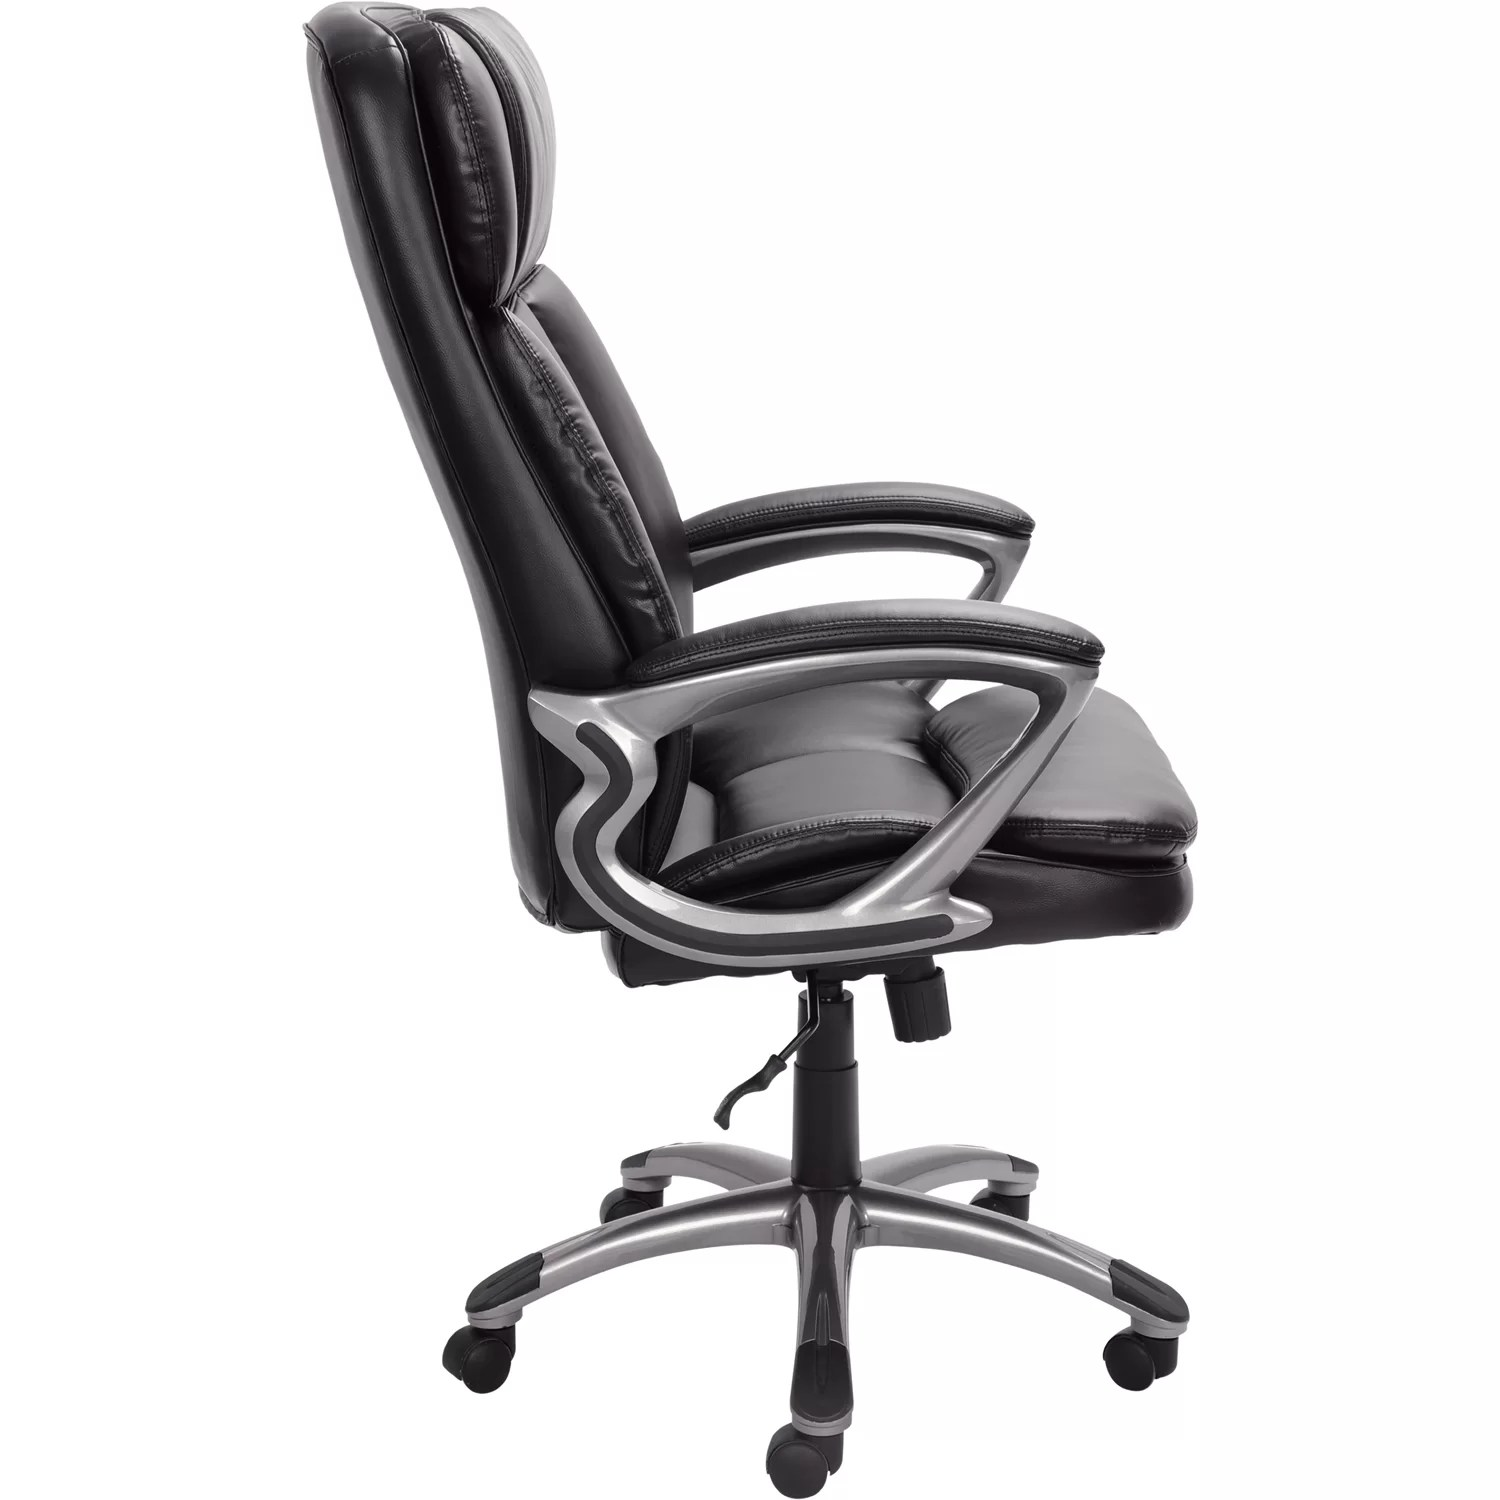 serta managers chair chairs for sporting events at home big and tall executive reviews wayfair